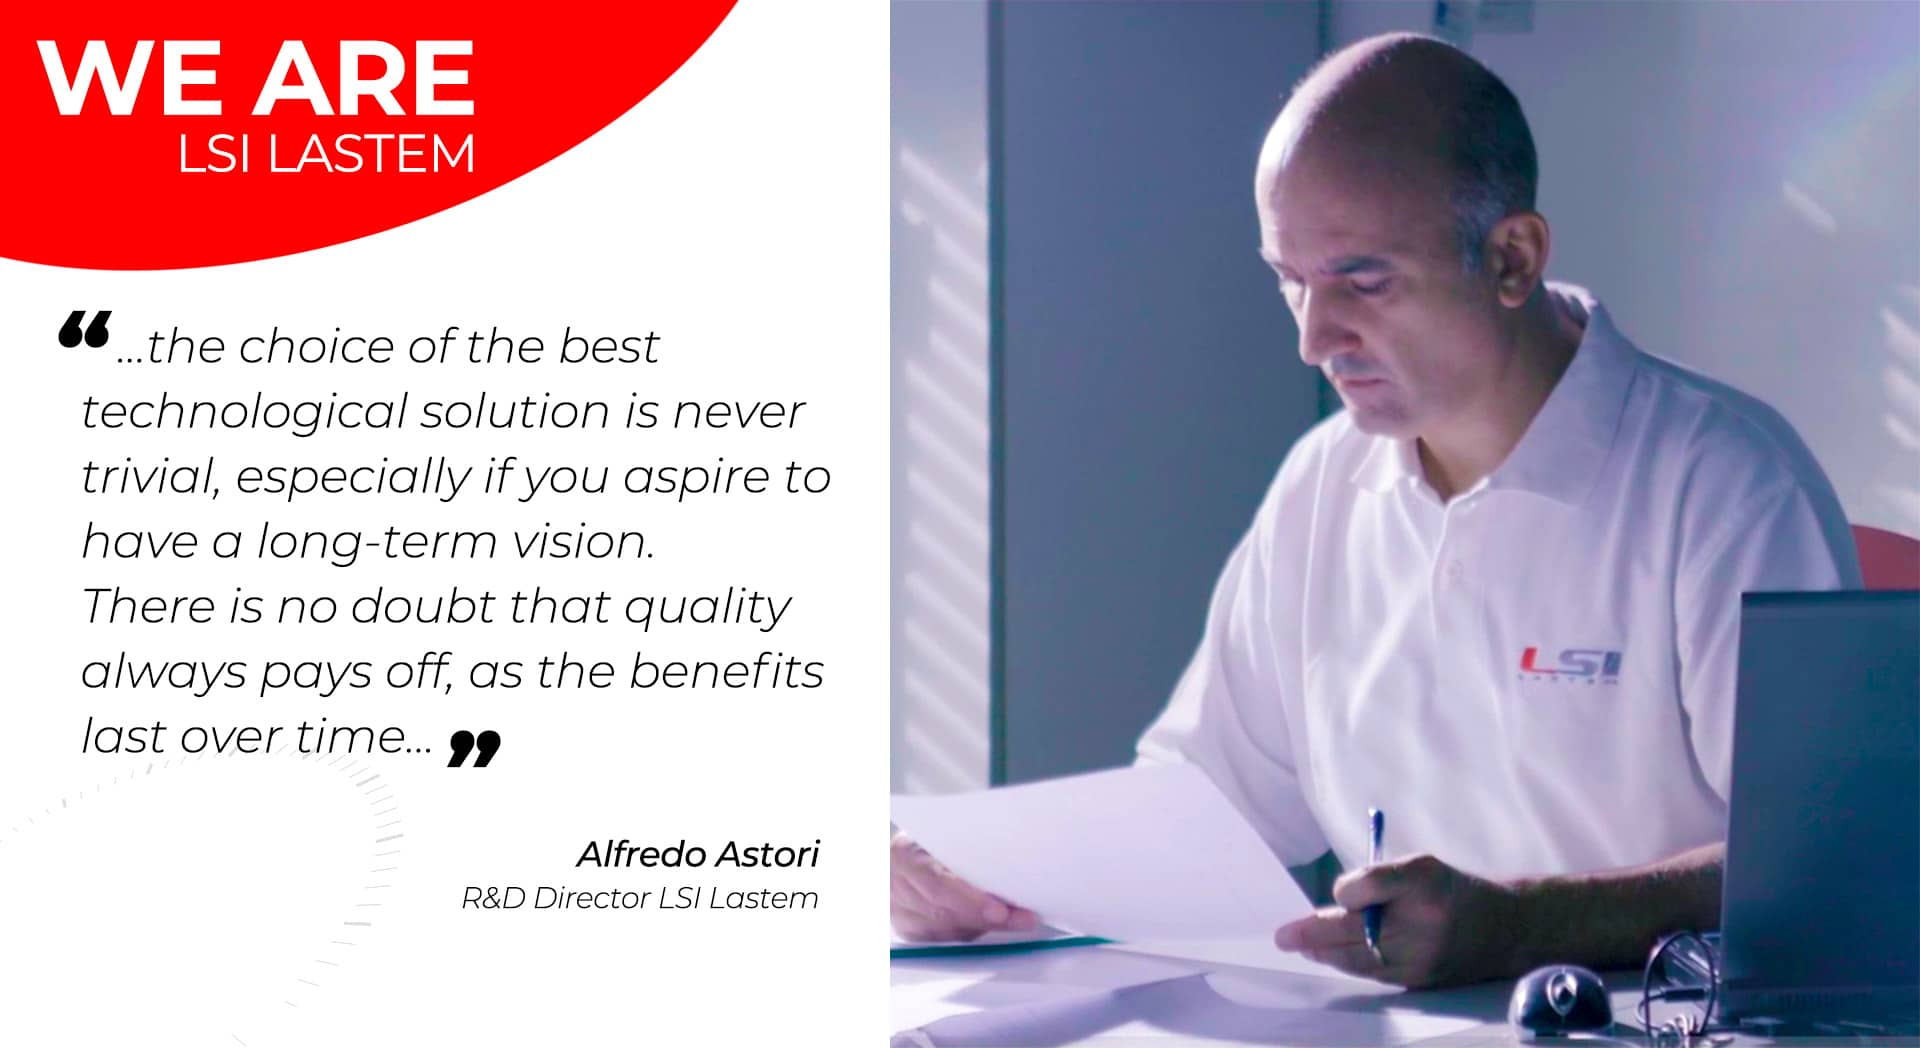 A little chat with the Research and Development Director Alfredo Astori